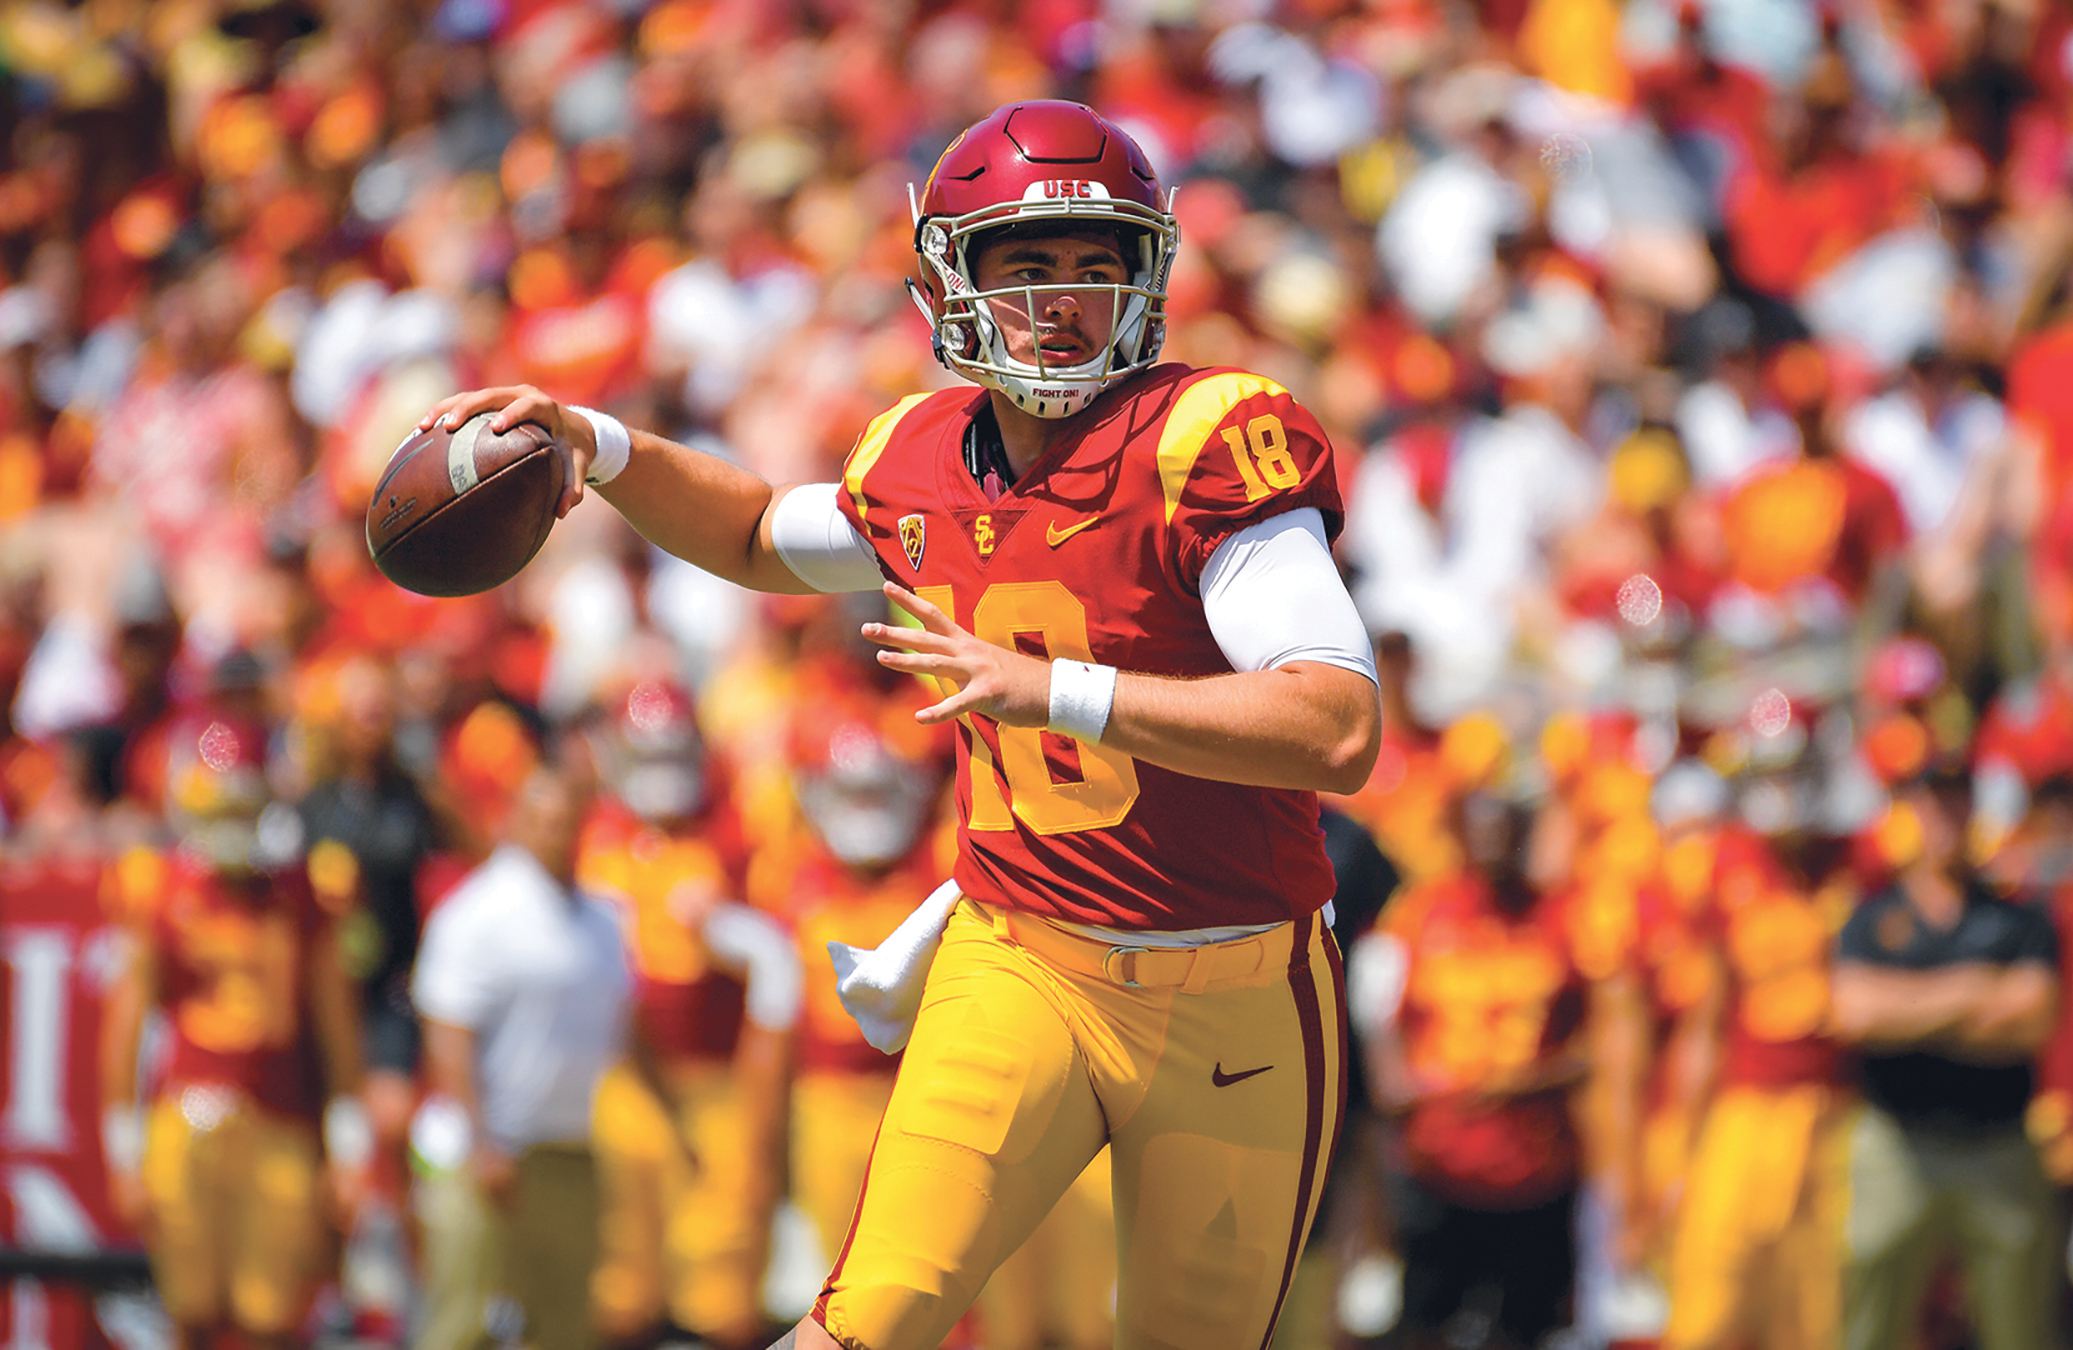 JT Daniels completed 21 of 43 passes for 180 yards in a loss to Cal (courtesy photo)